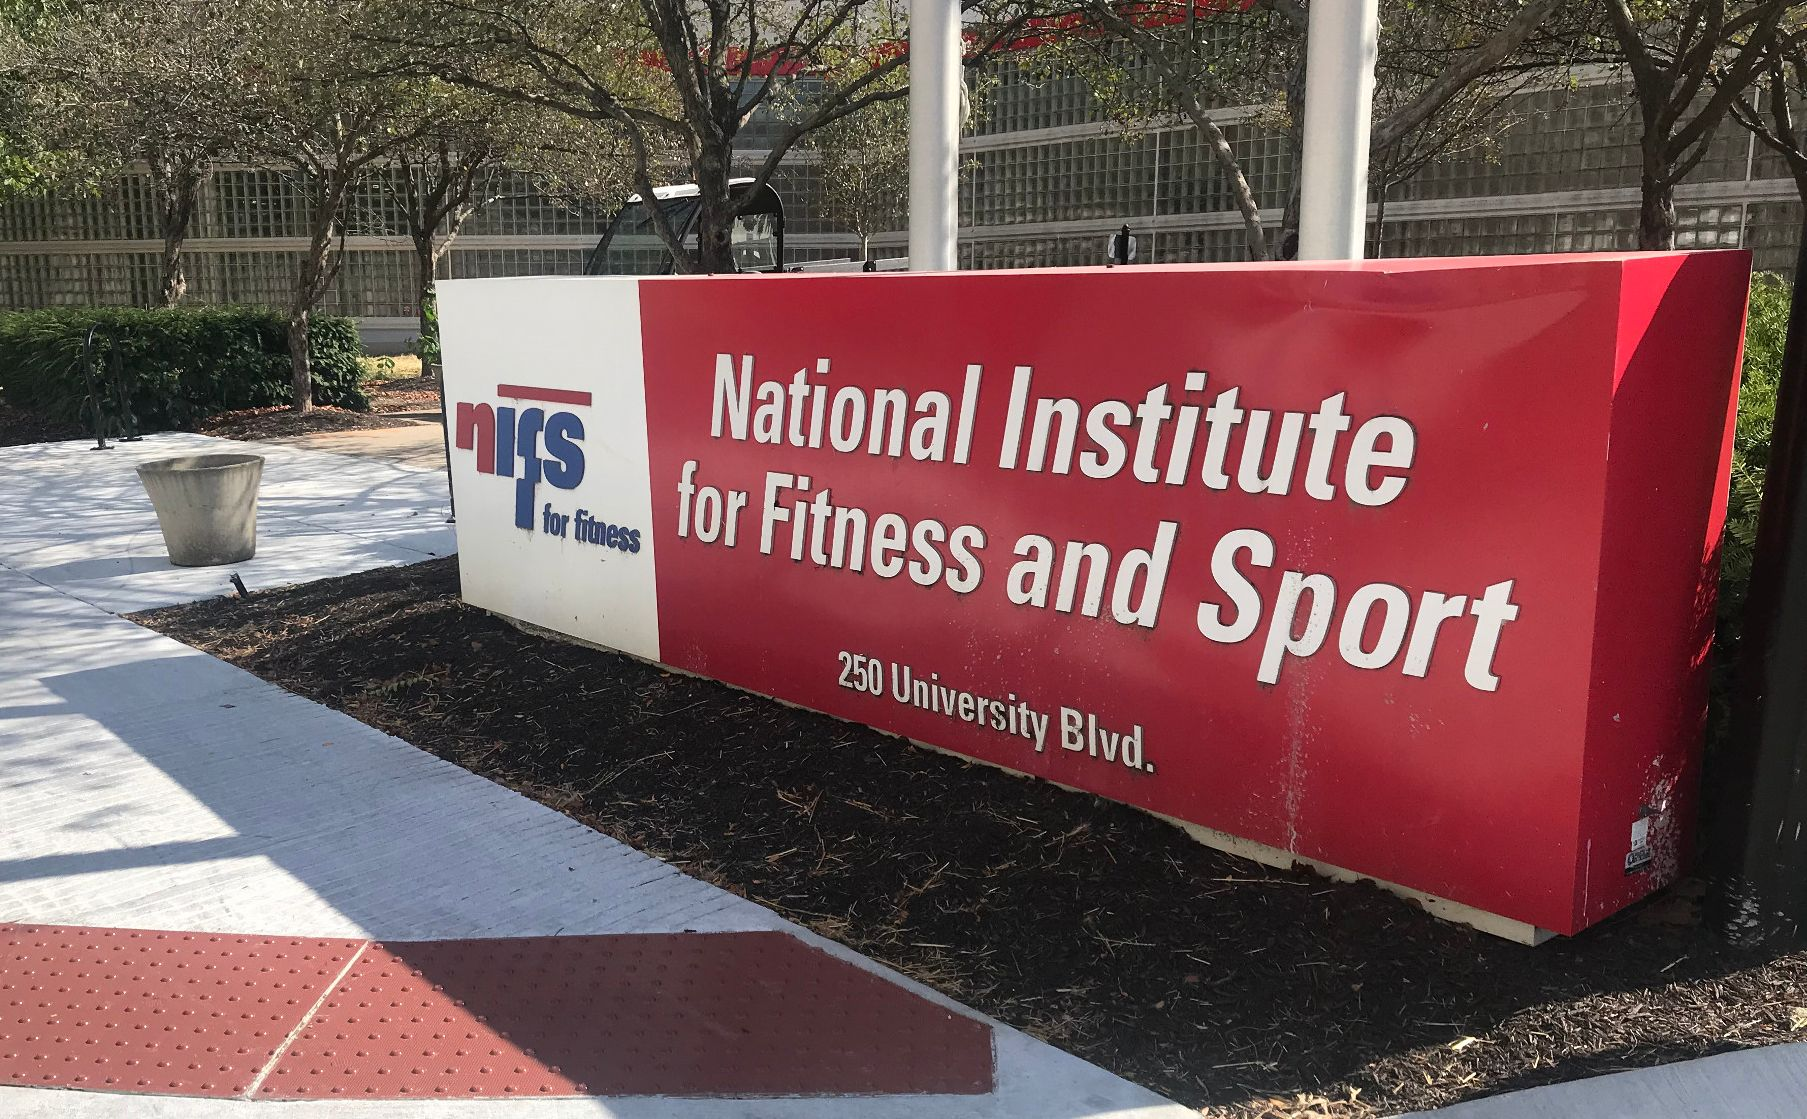 The sign outside the National Institute for Fitness and Sport.